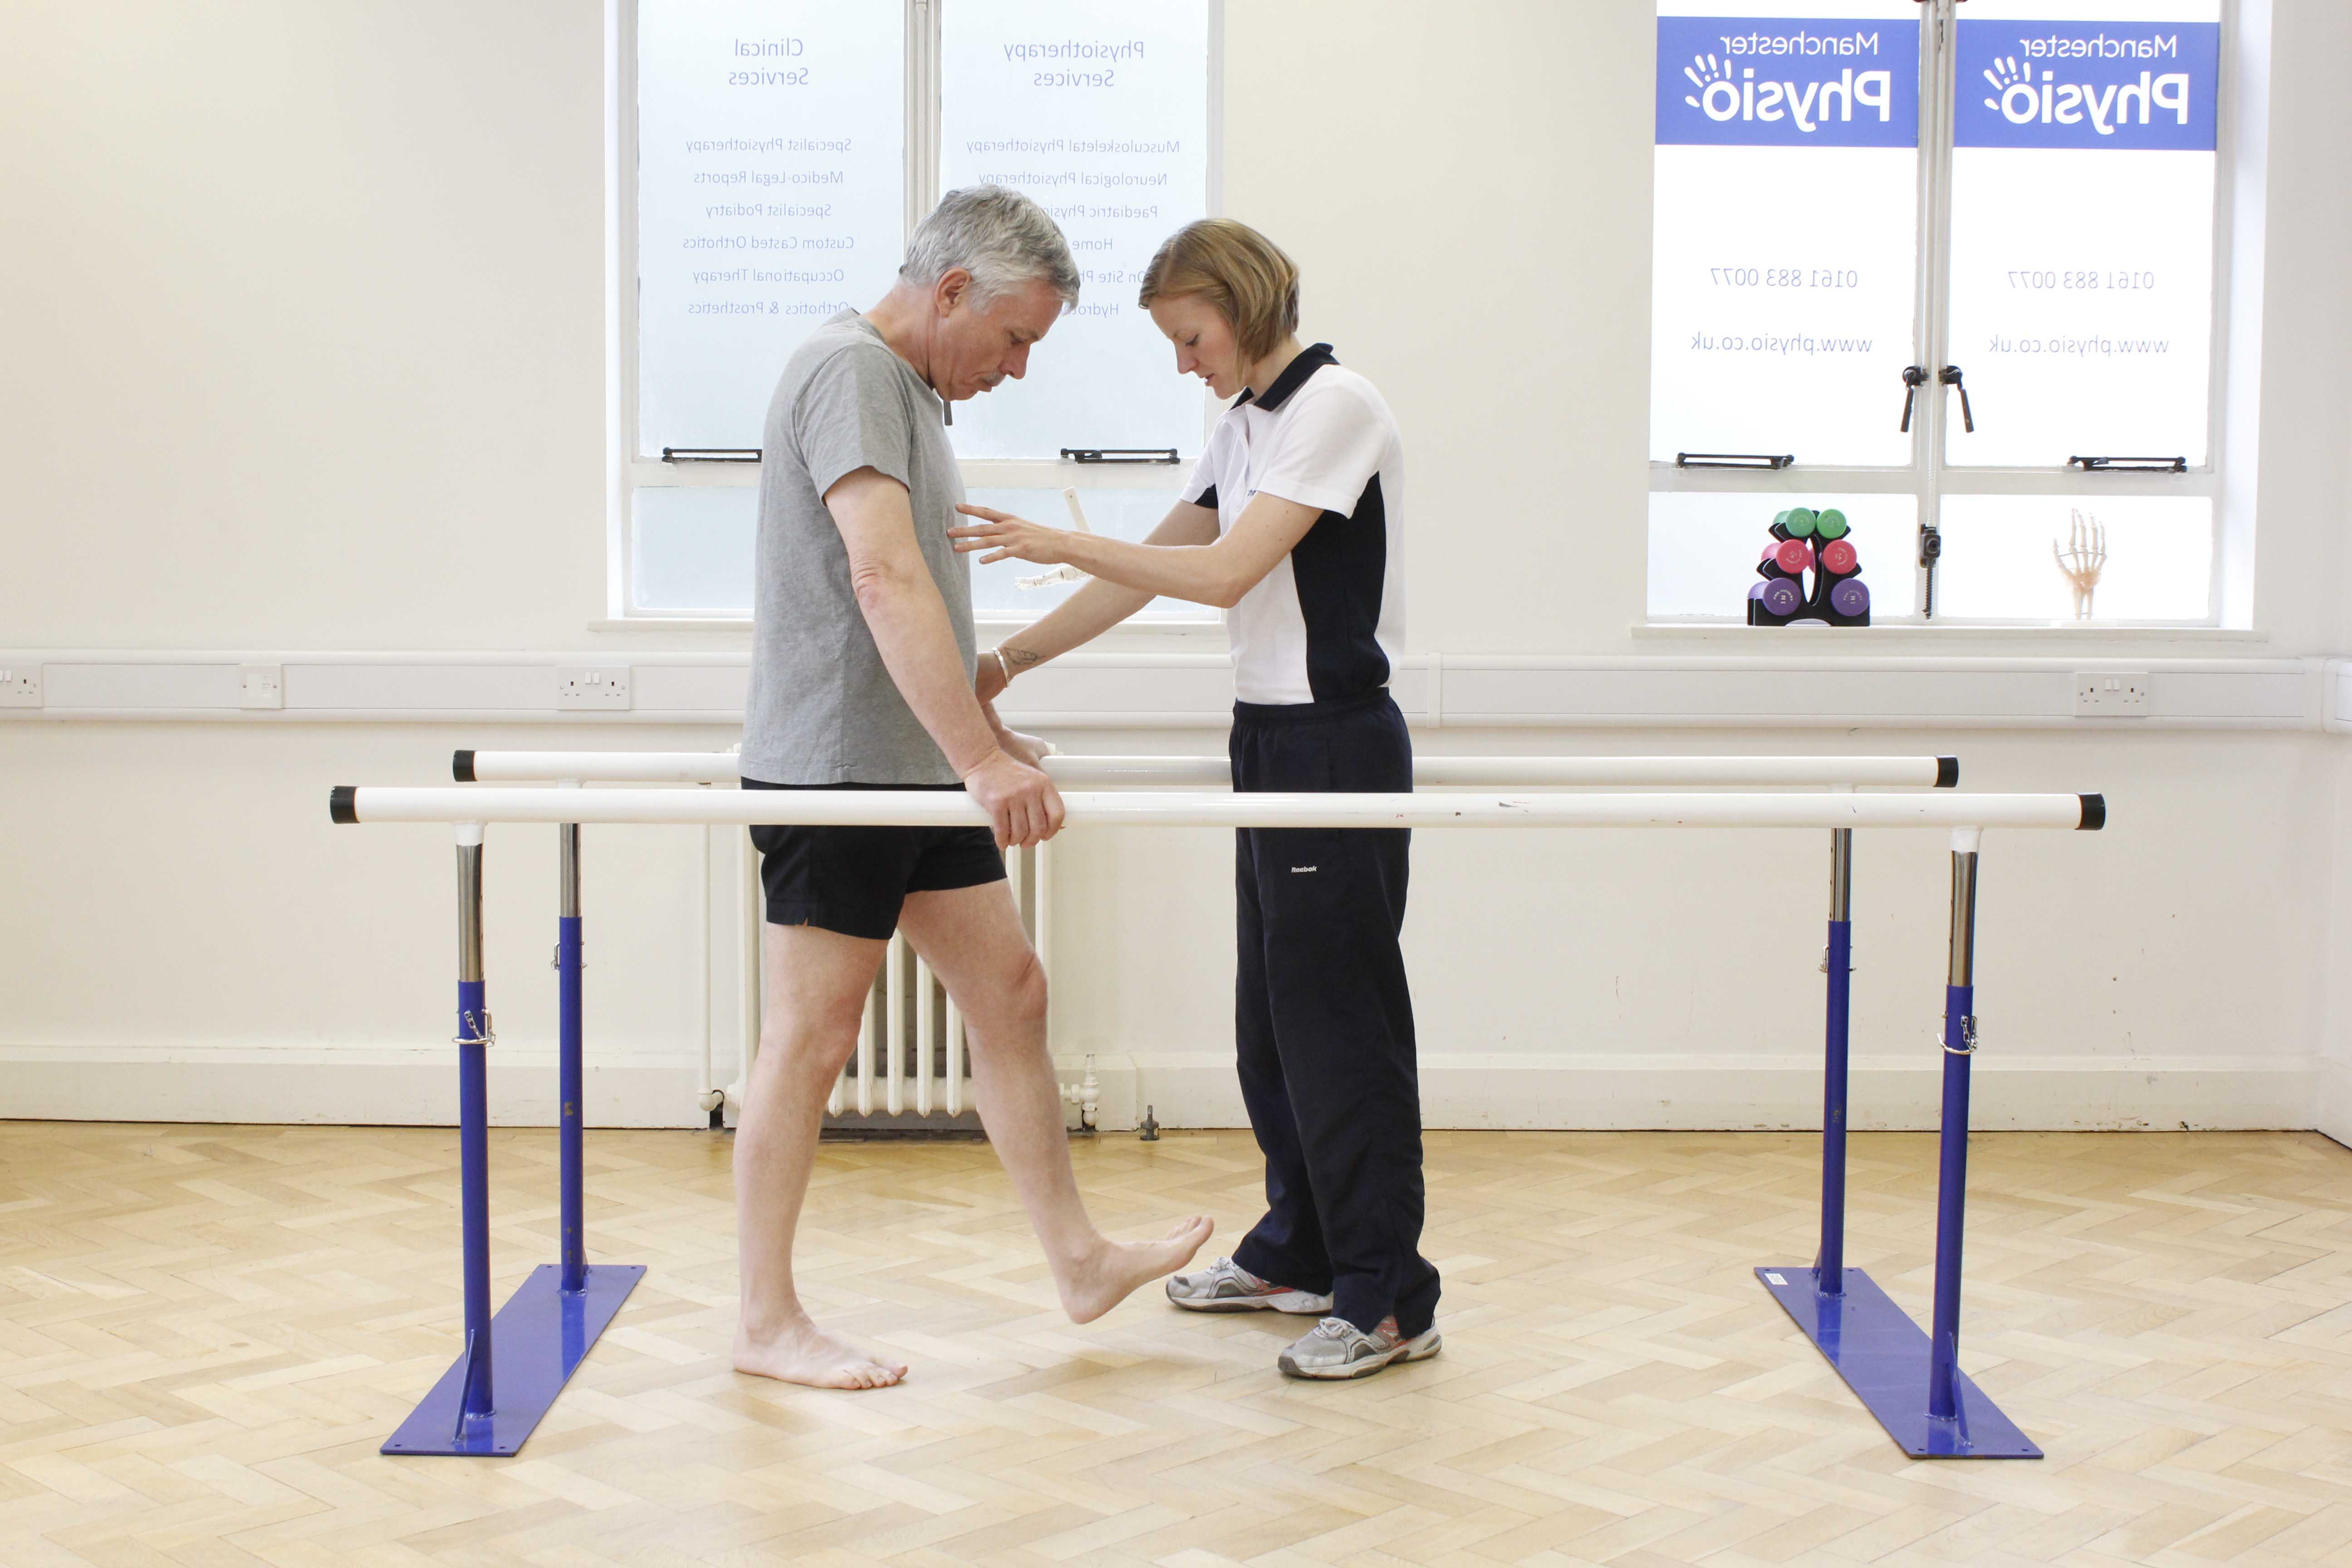 Mobility exercises between the parallel bars assisted by specialist neurological physiotherapist